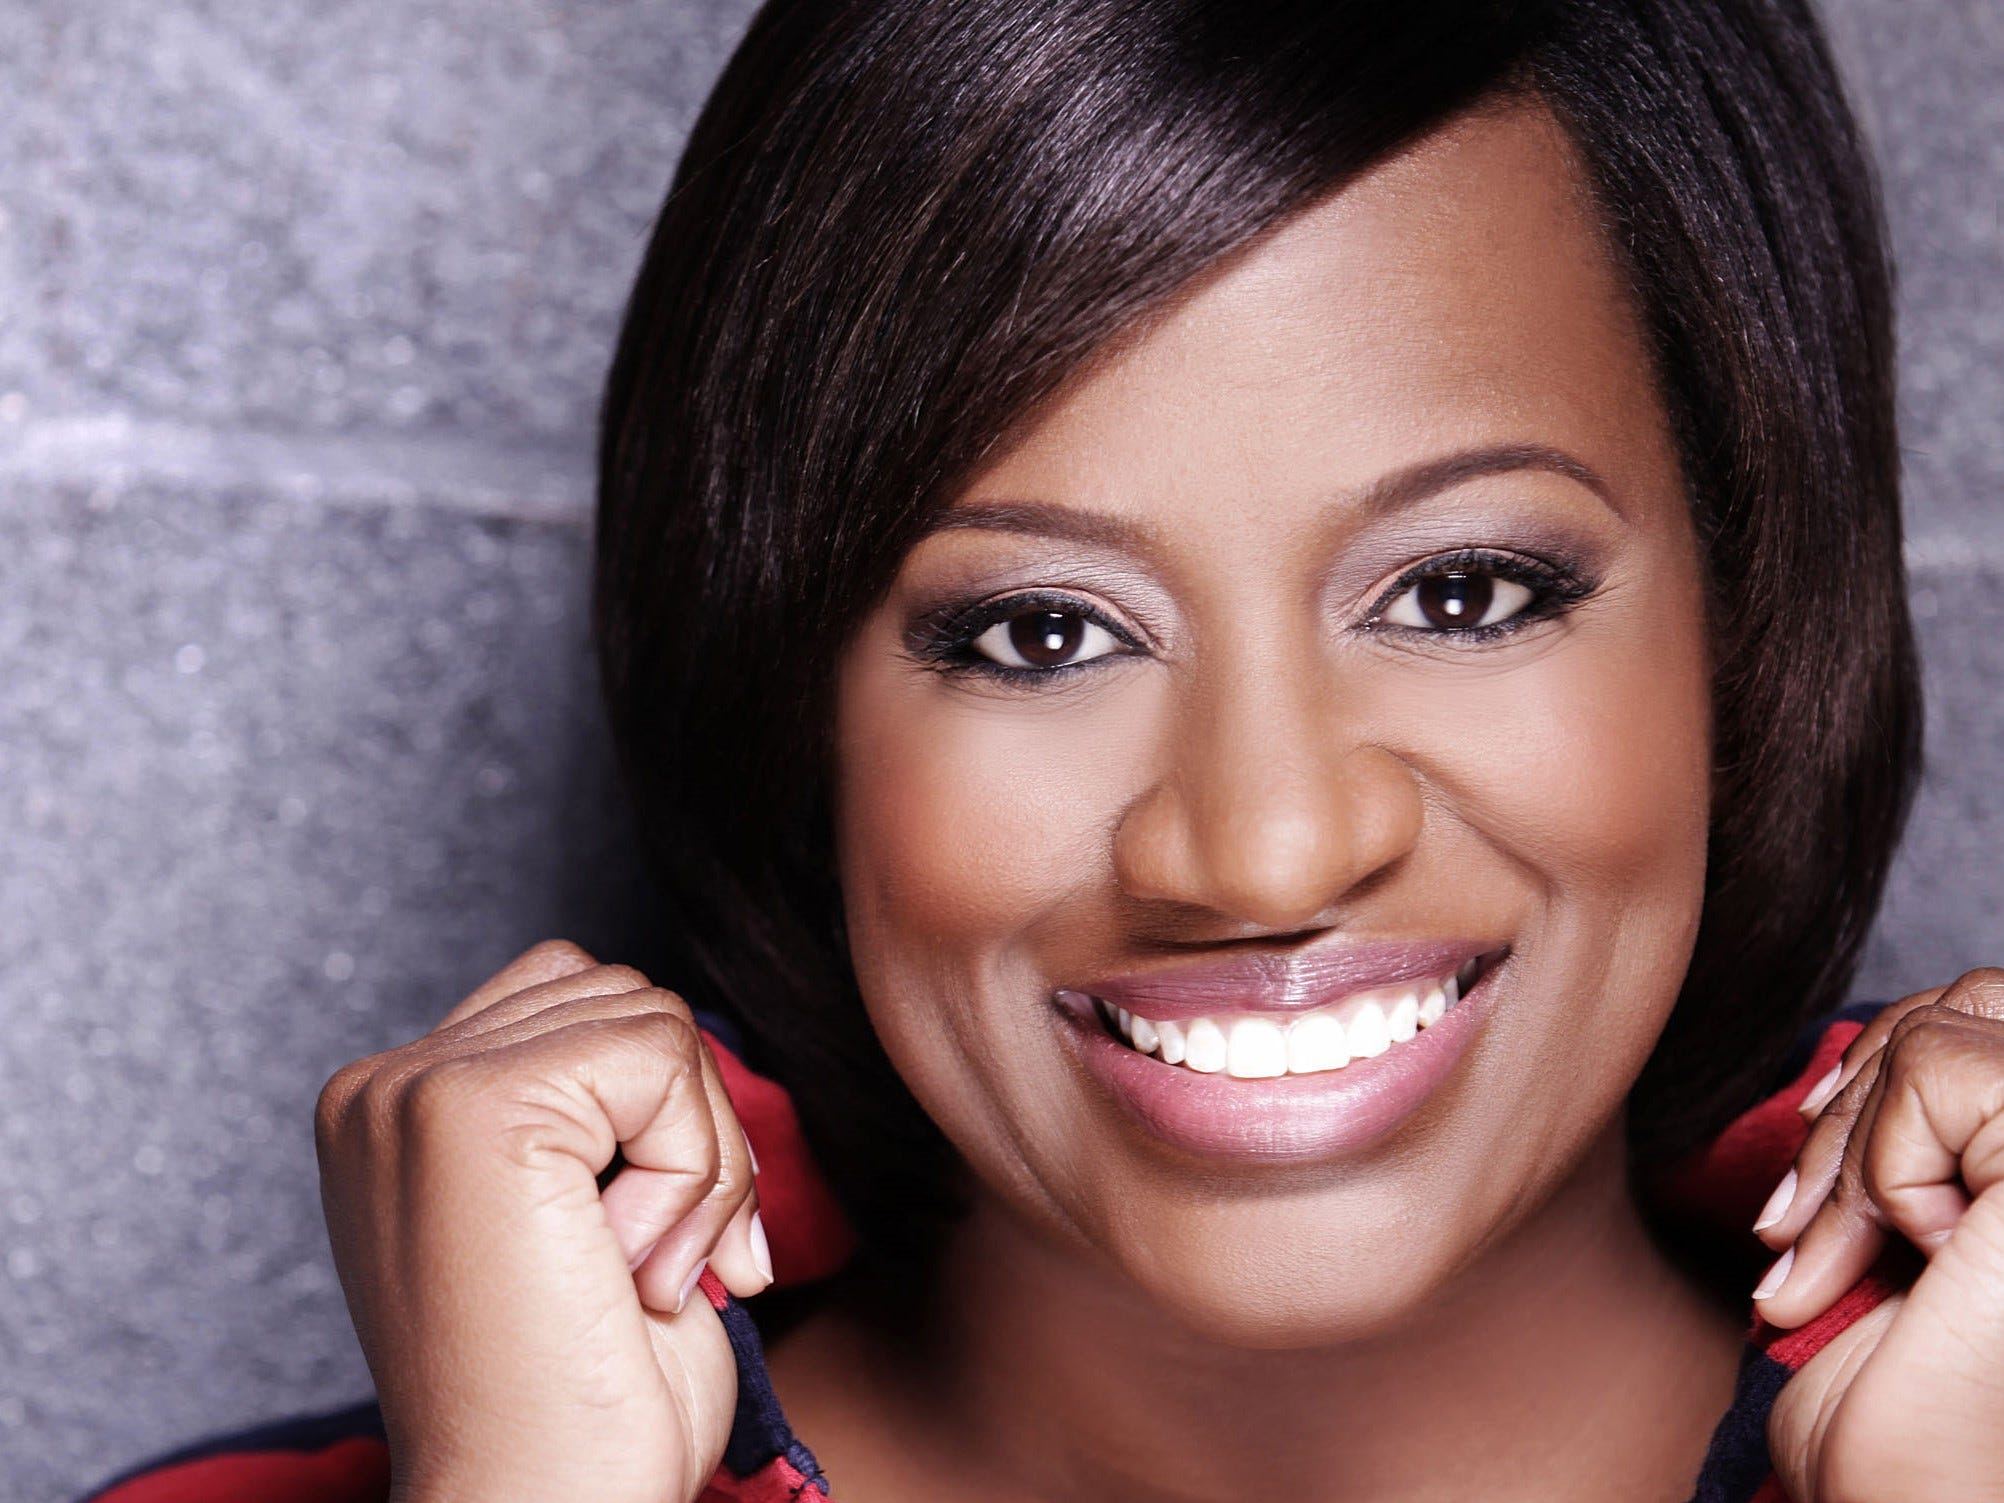 Comedienne Erin Jackson will do her stand-up routine at the Hyatt Regency in Morristown as part of First Night Morris.  More than 70 acts, including musicians and dance troupes, will be held at some 20 locations in downtown Morristown, beginning at 4:45 p.m. on Monday, December 31.